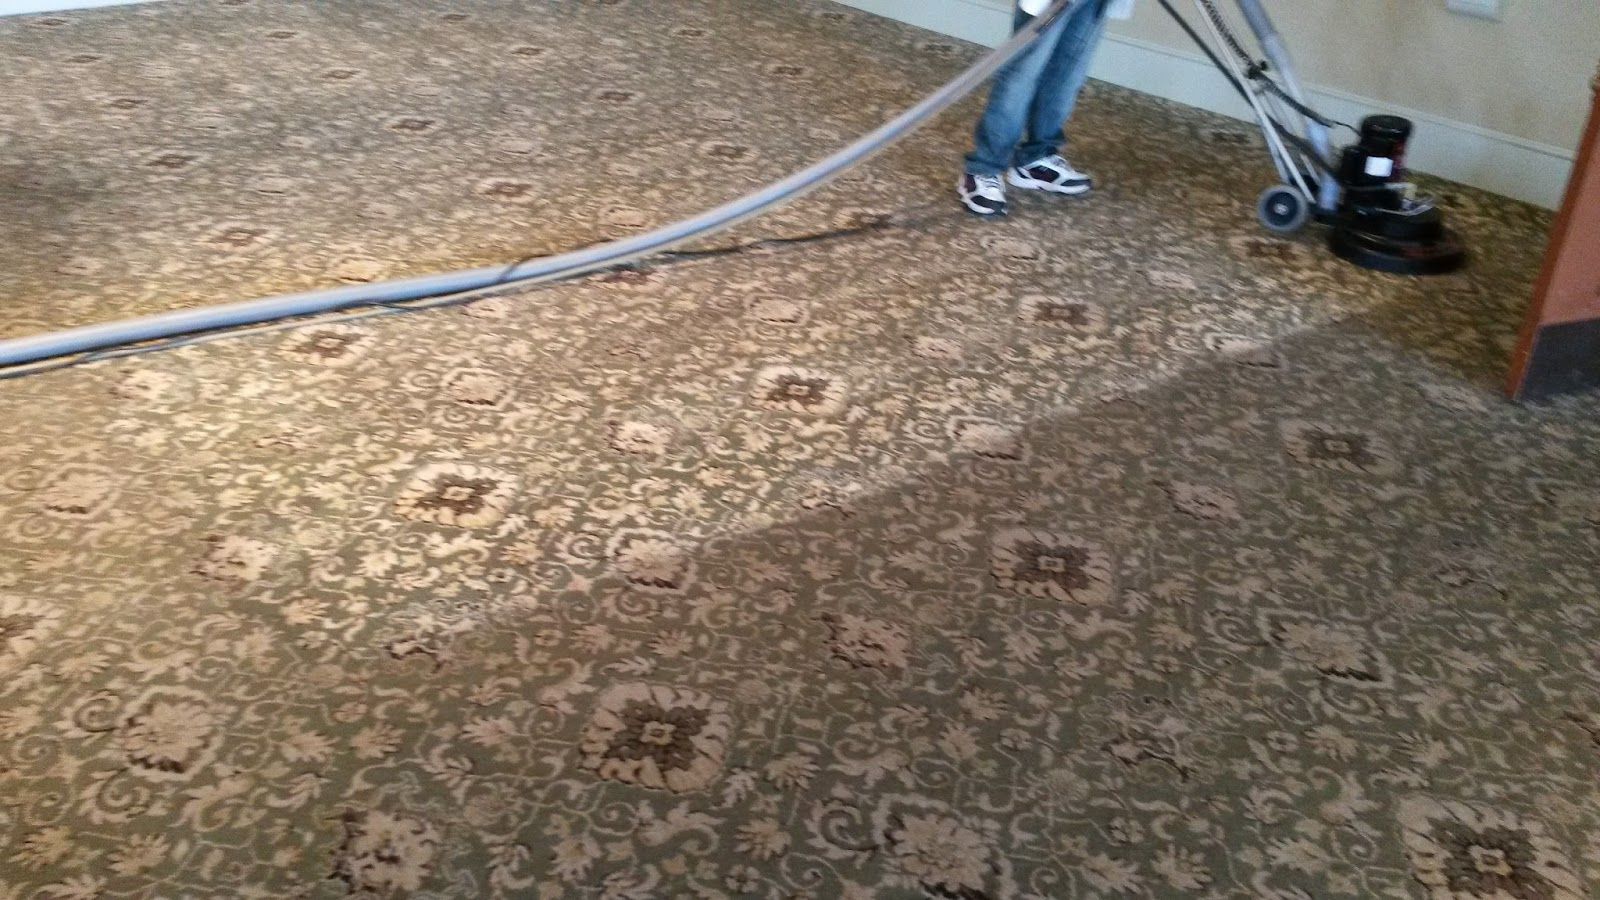 Bayville Carpet Cleaning In Bayville Nj